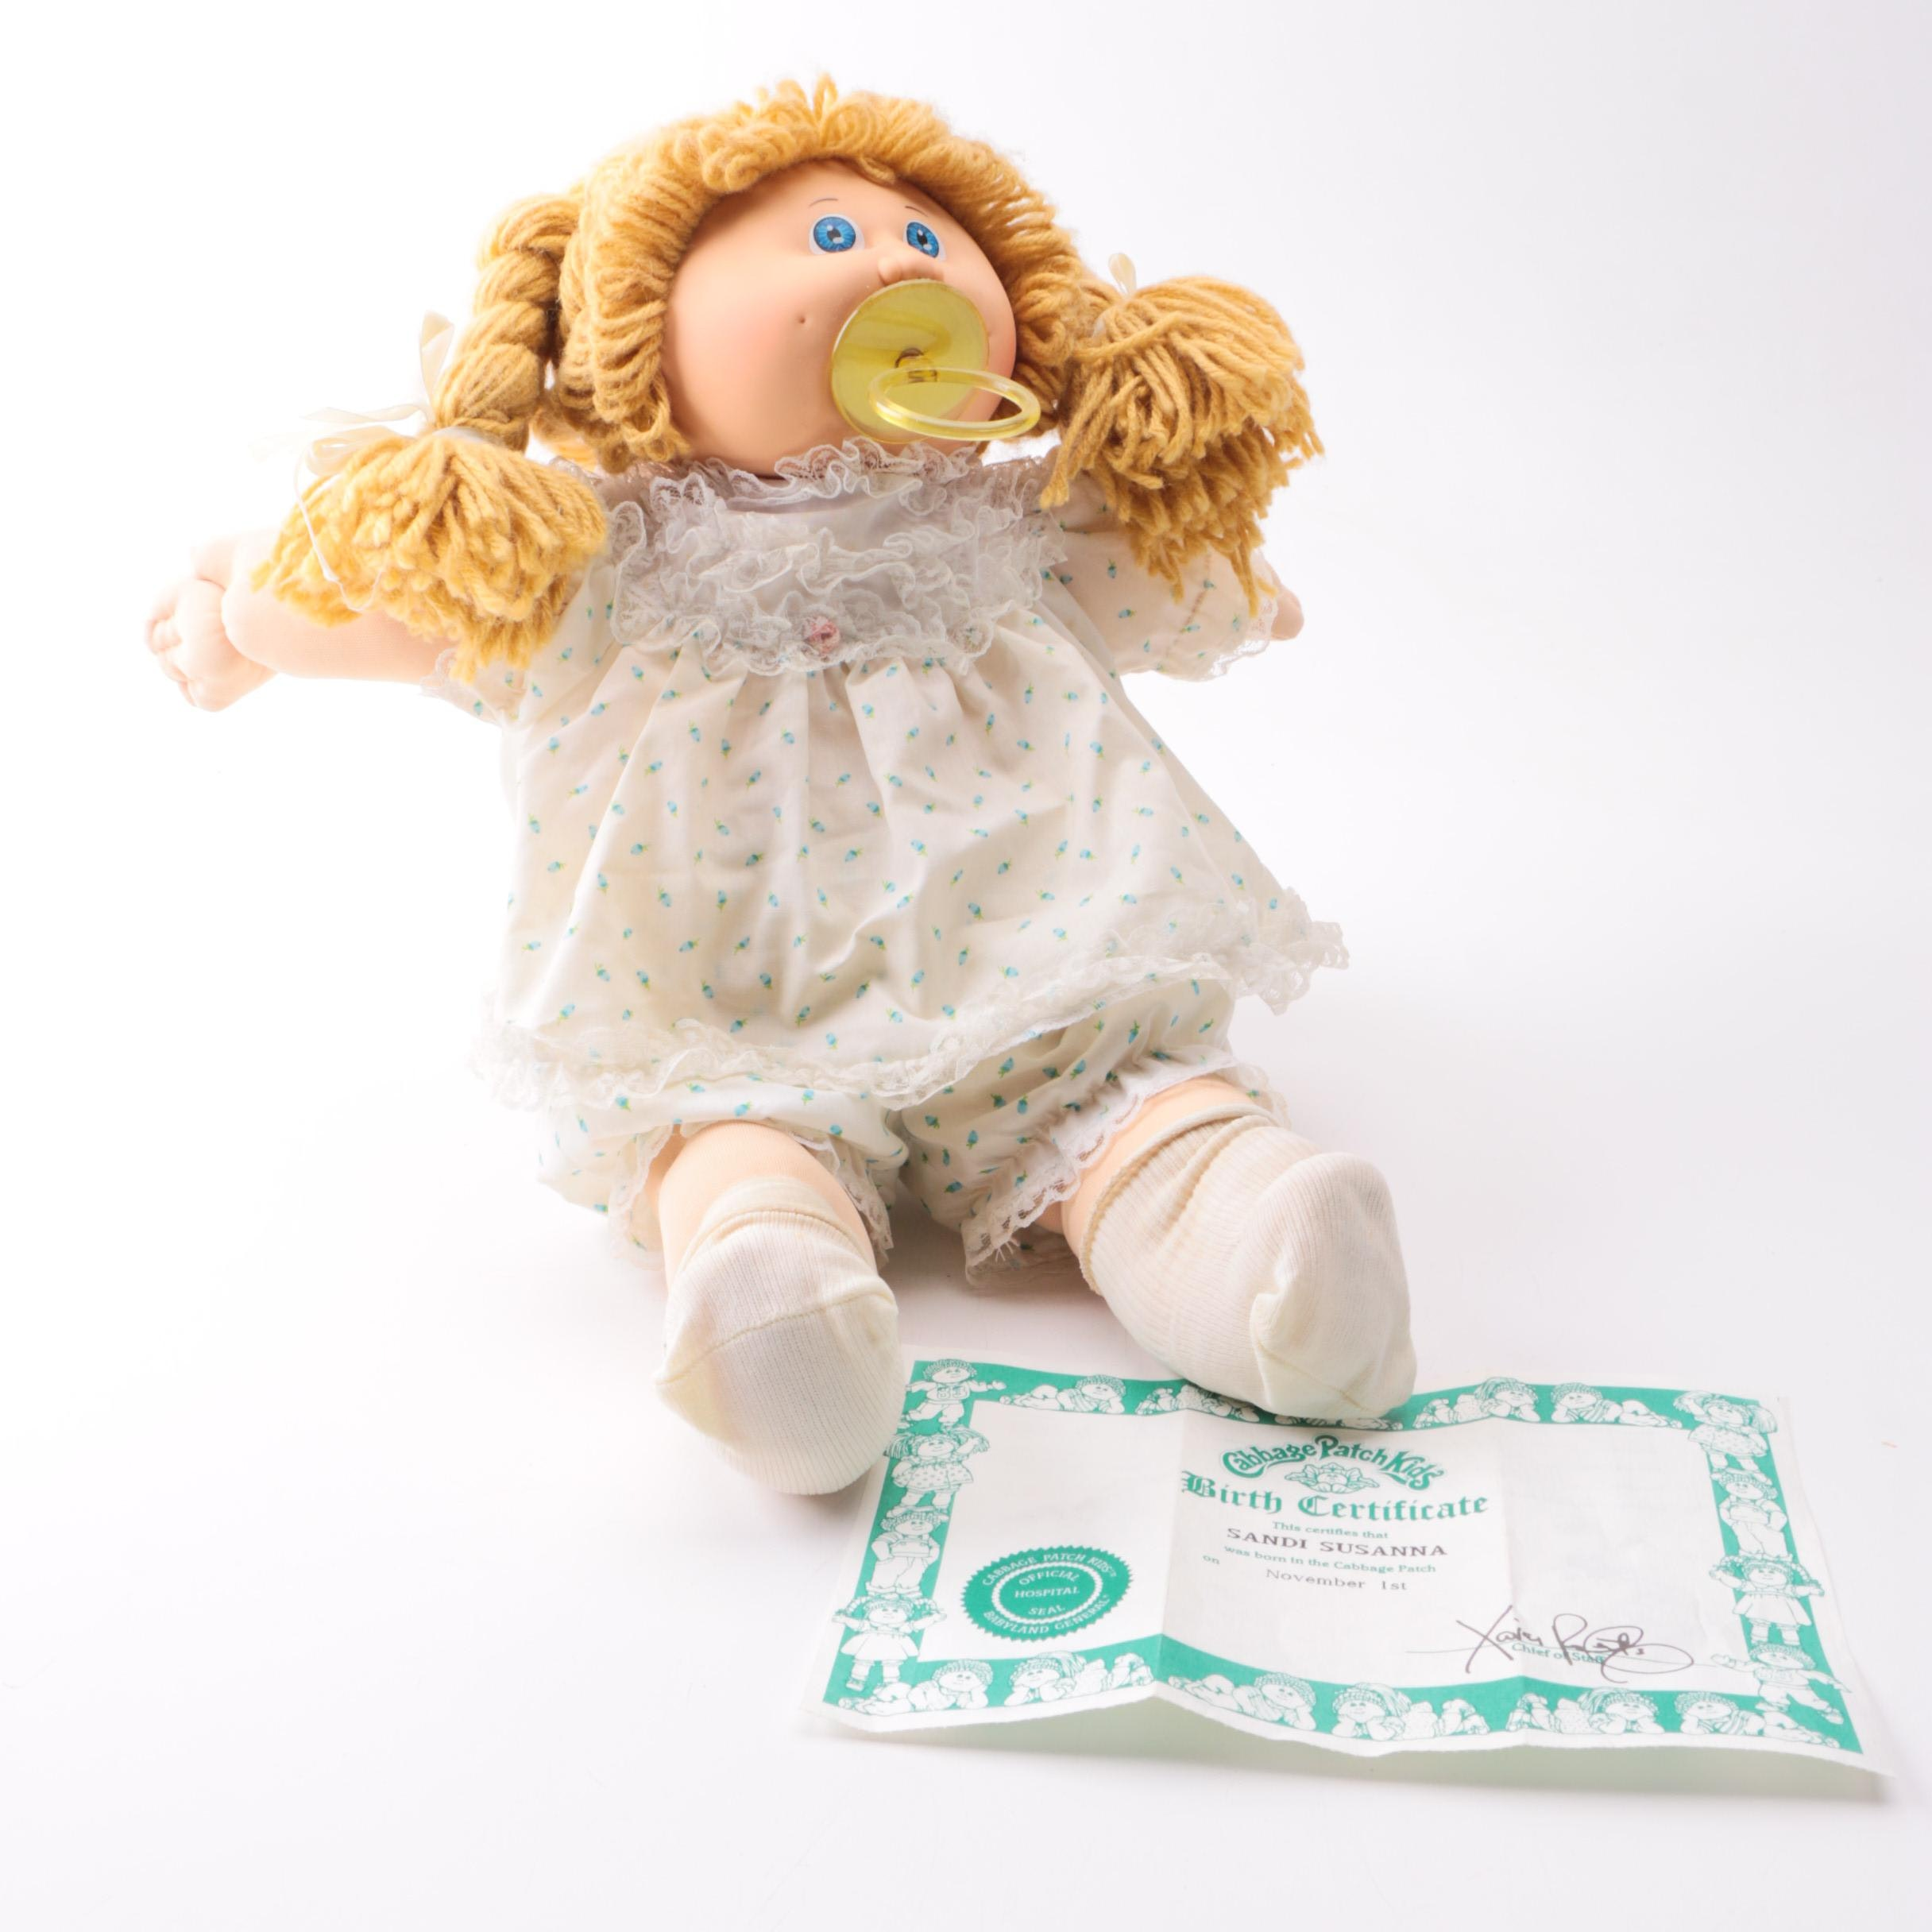 Cabbage Patch Cloth Doll